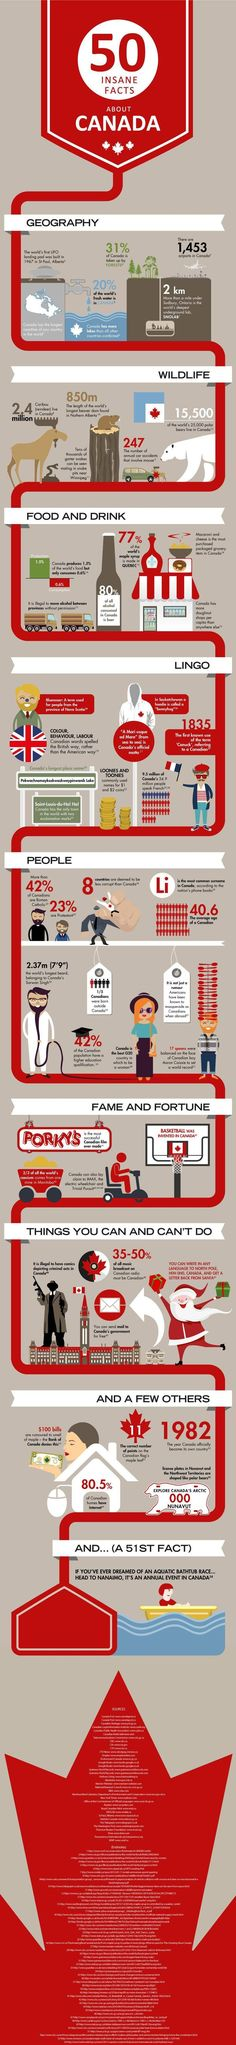 Here's some fun facts